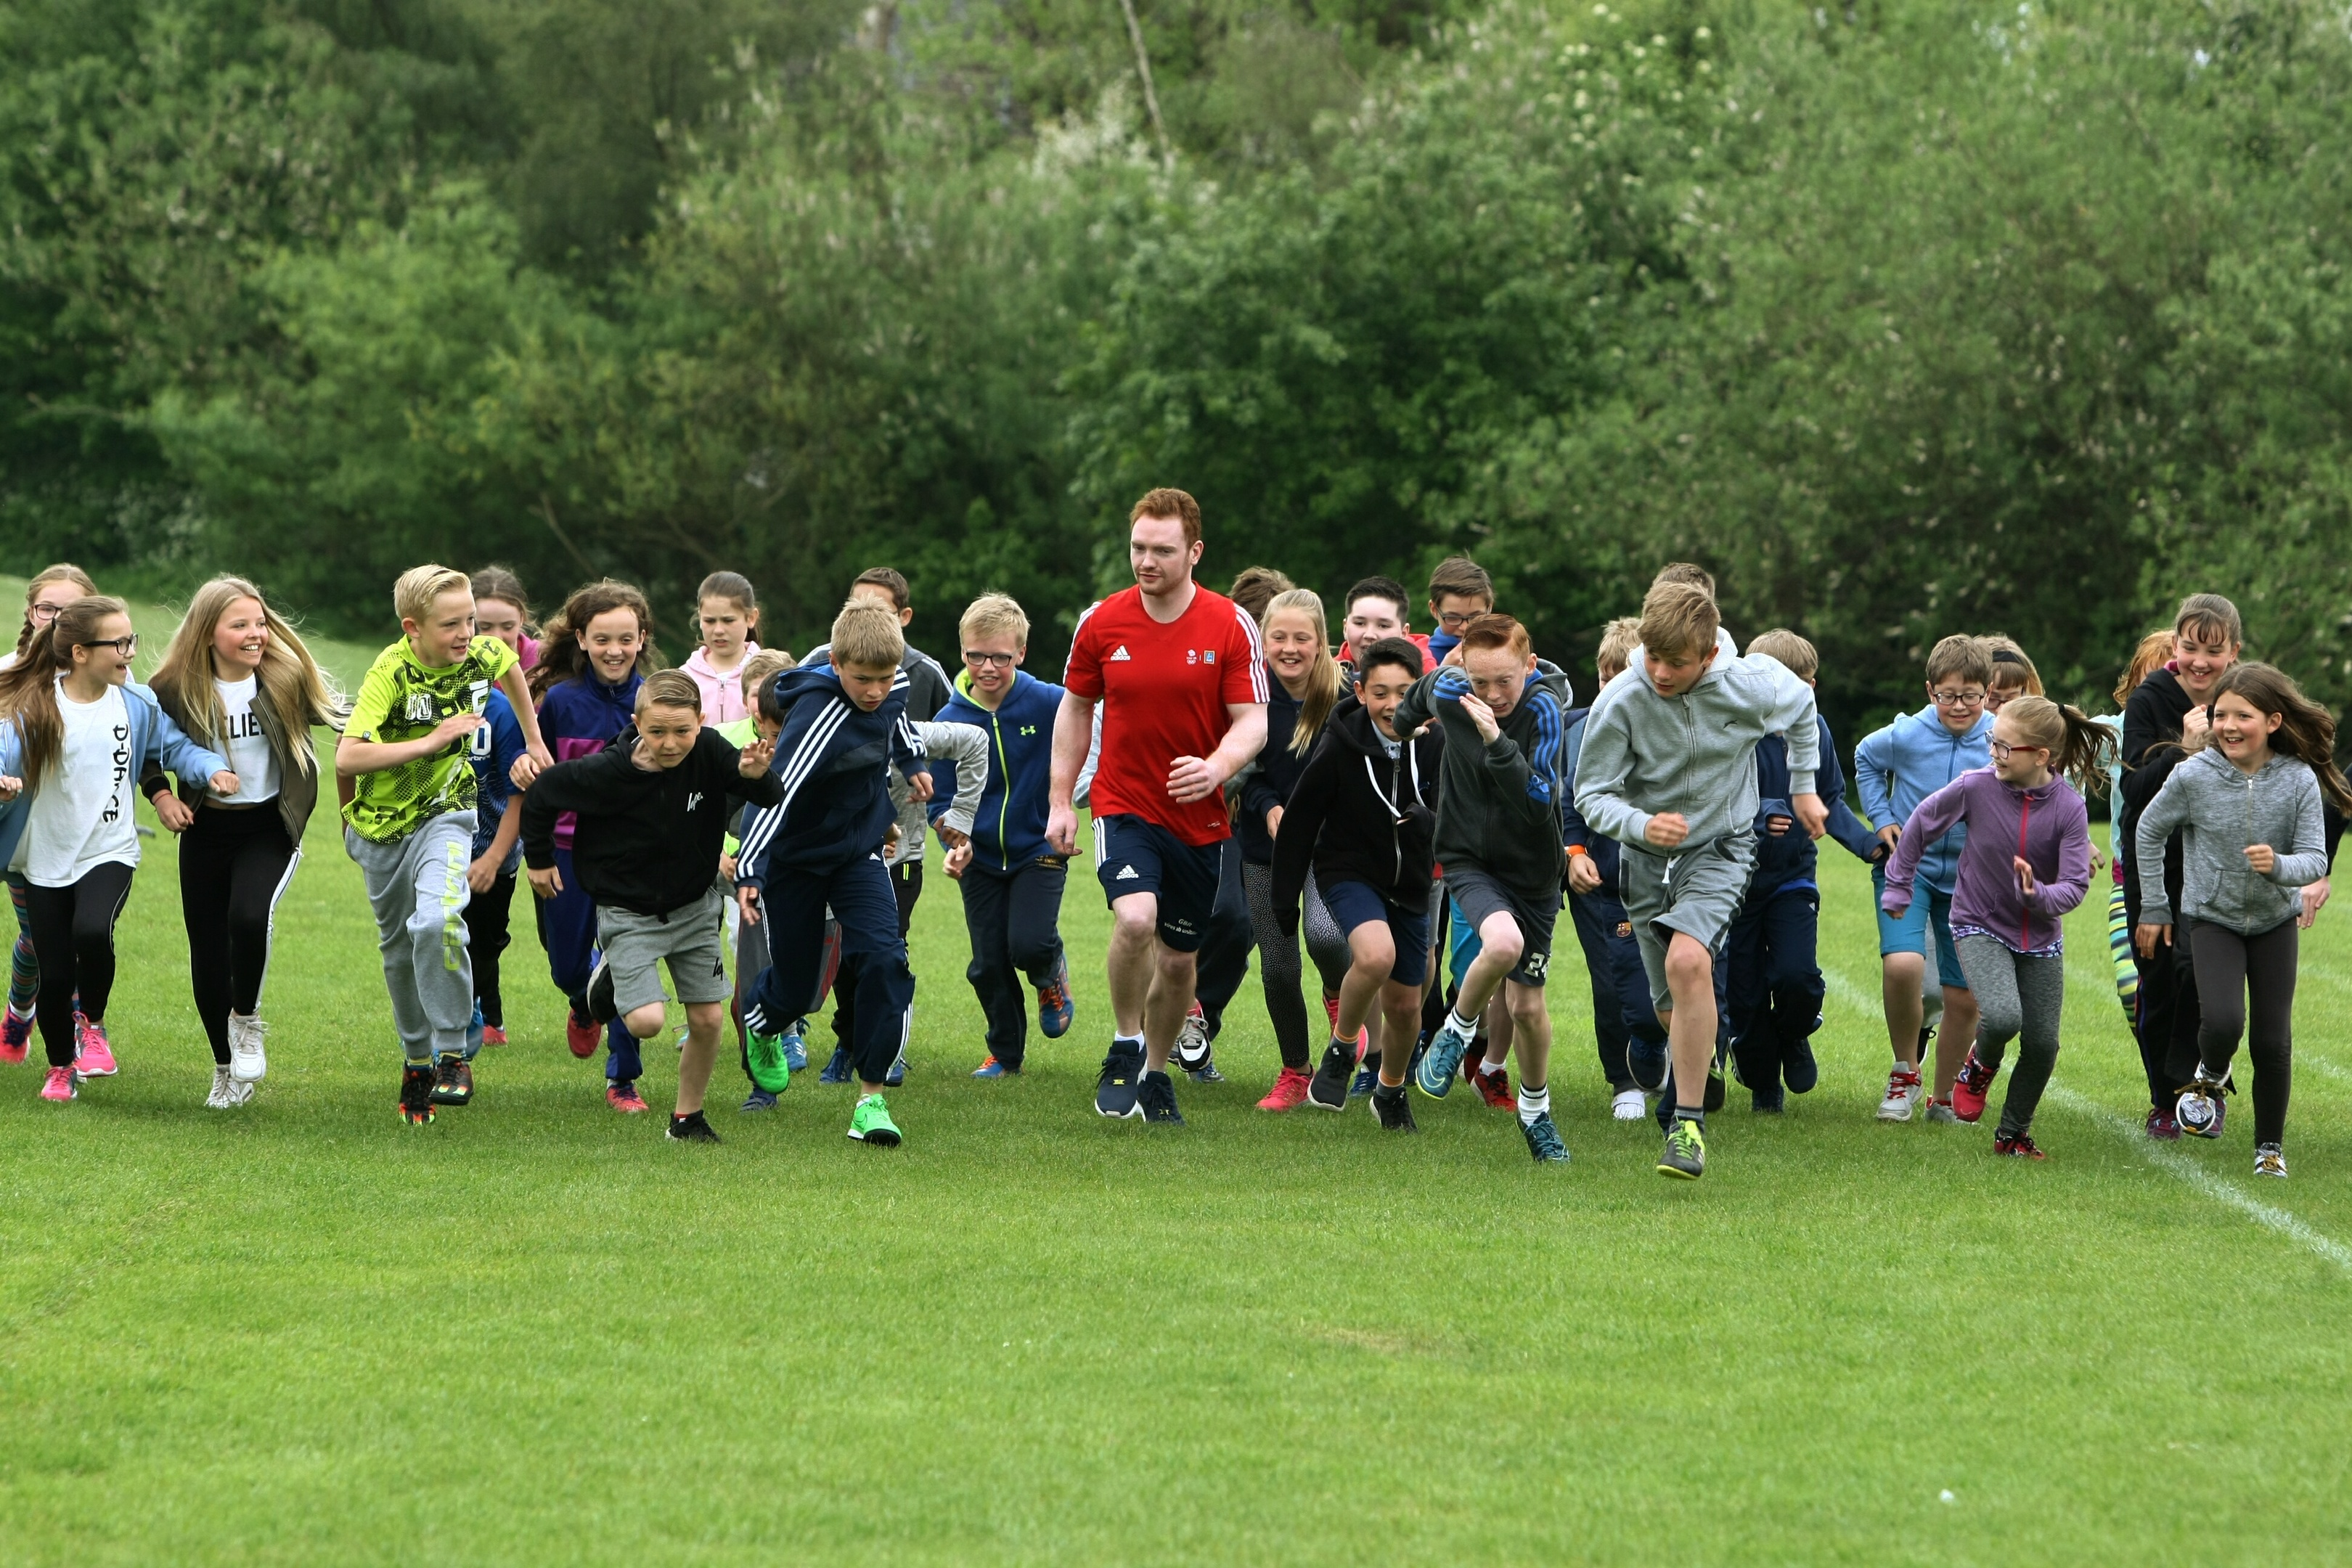 Team GB Gymnast, Dan Purvis (in the red shirt) taking part with the P6s on their daily mile